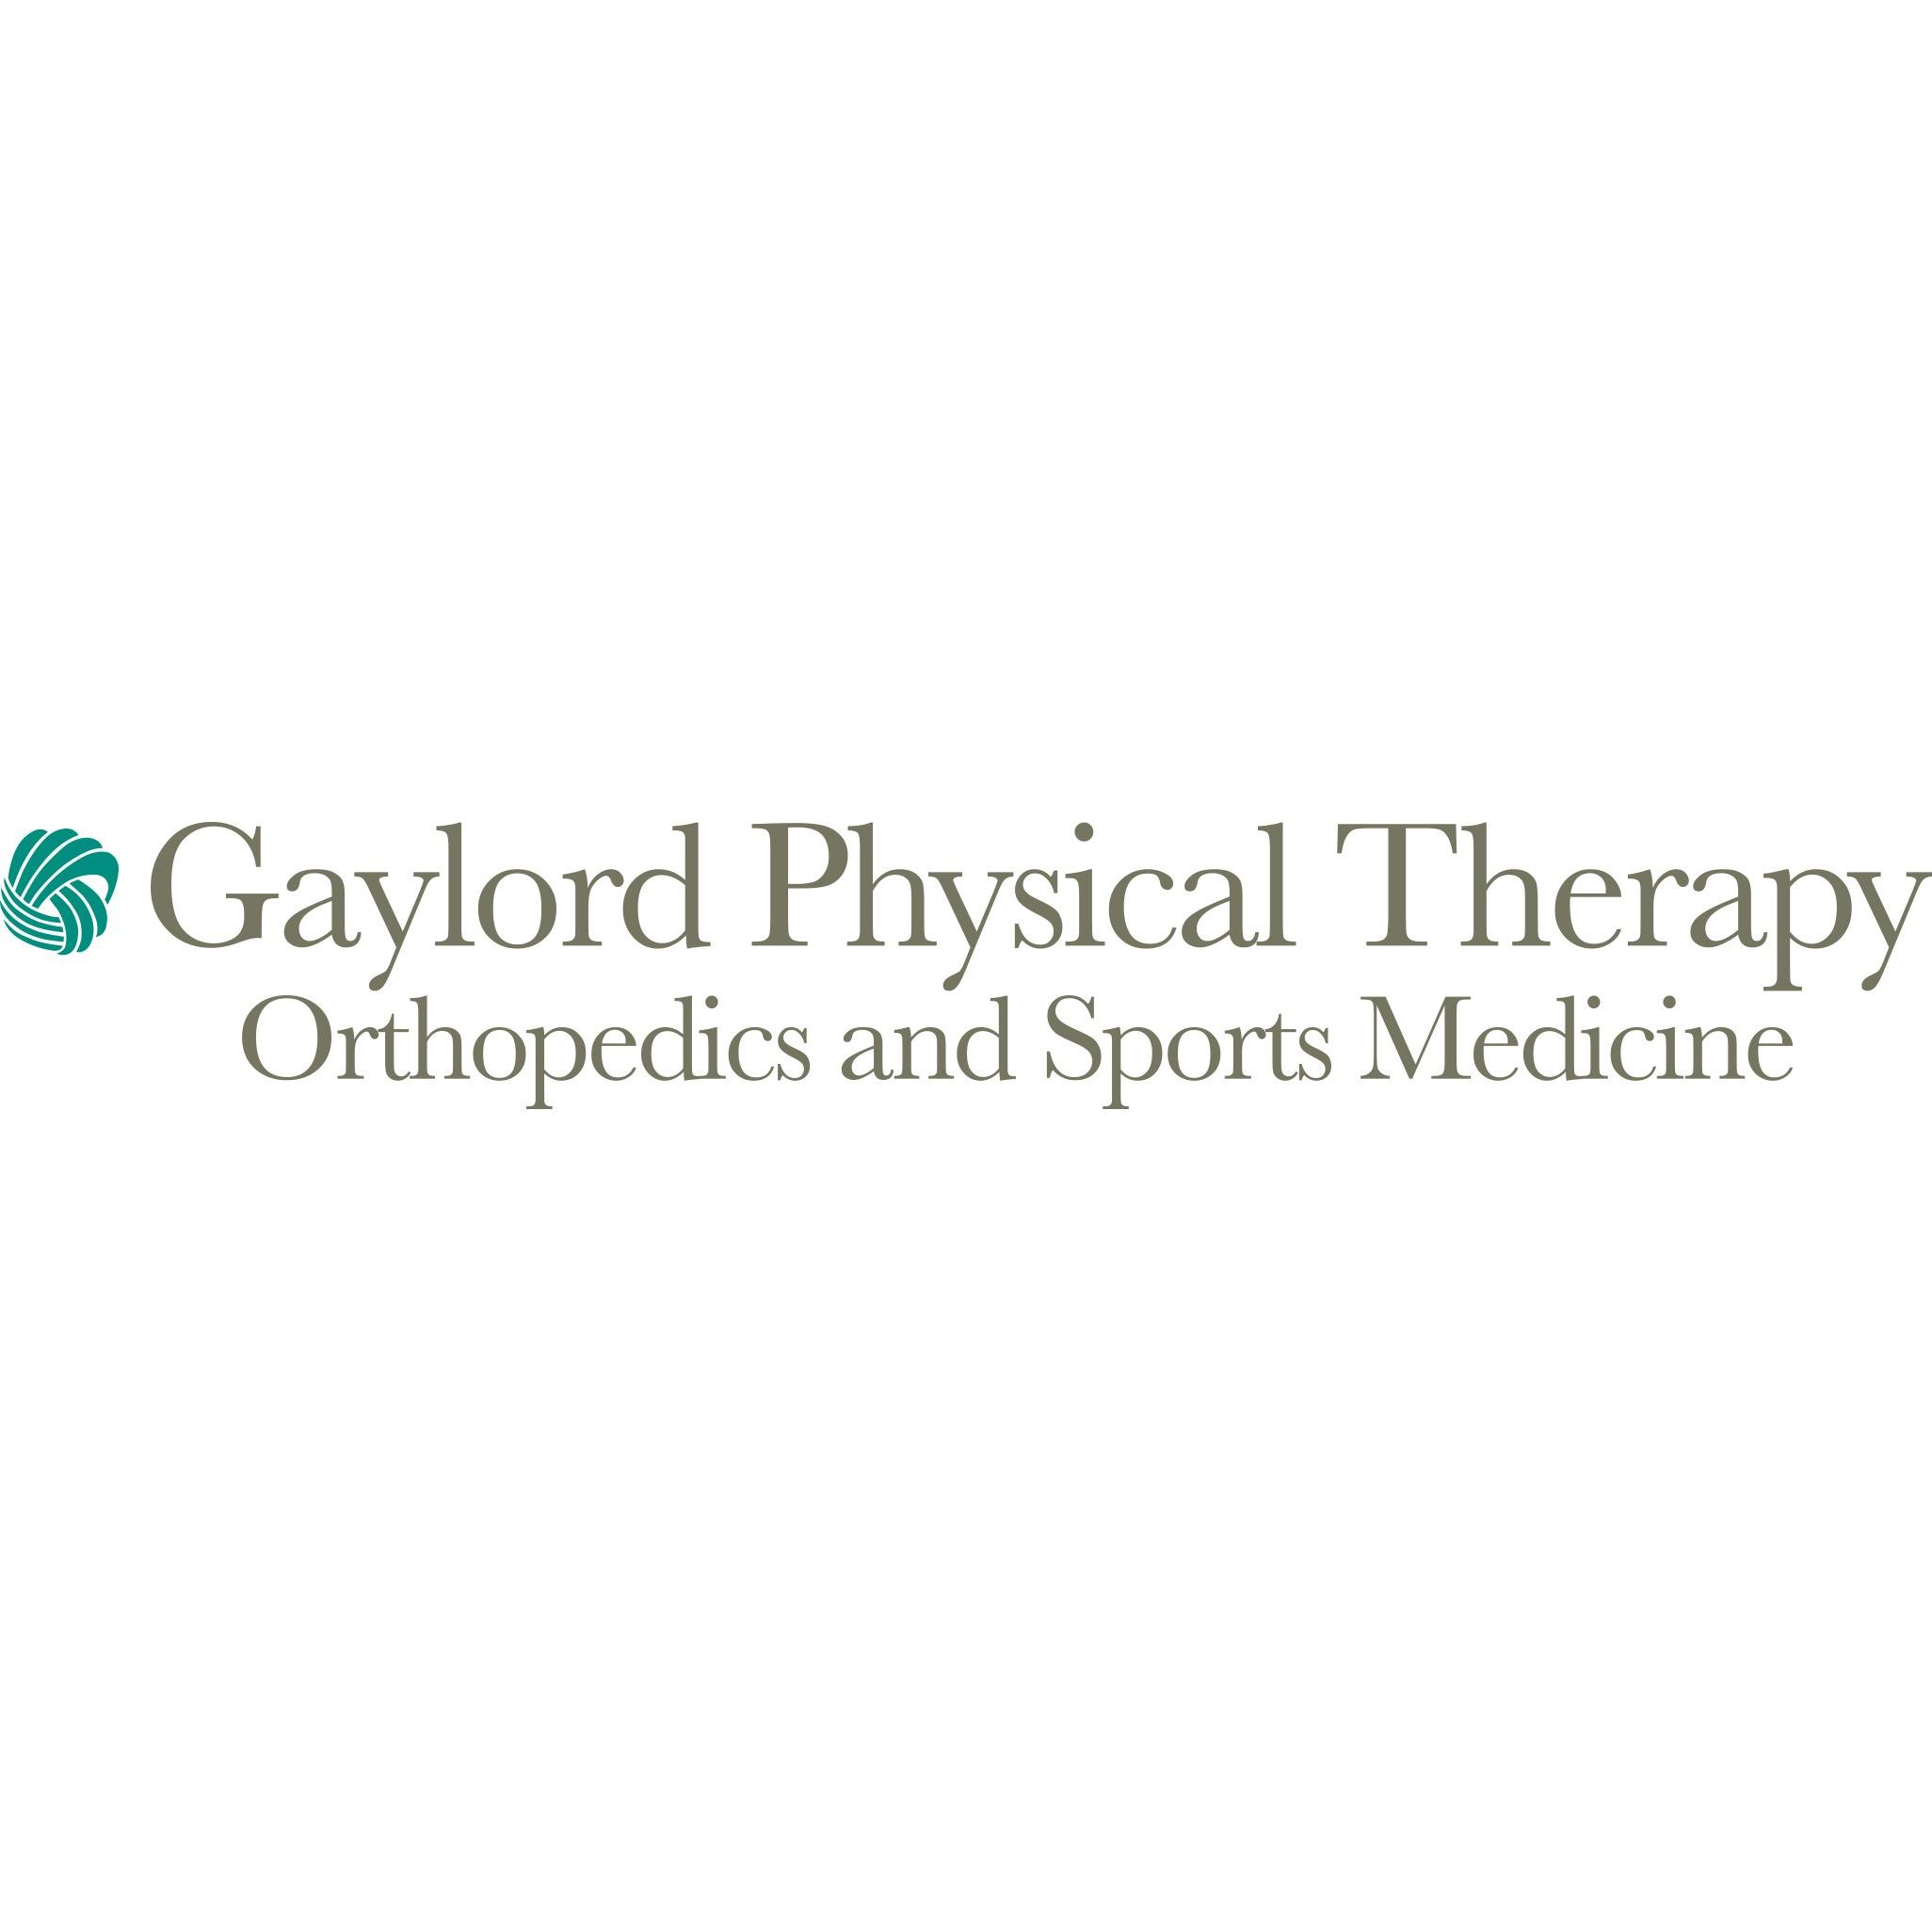 Gaylord Physical Therapy Orthopedics and Sports Medicine image 0